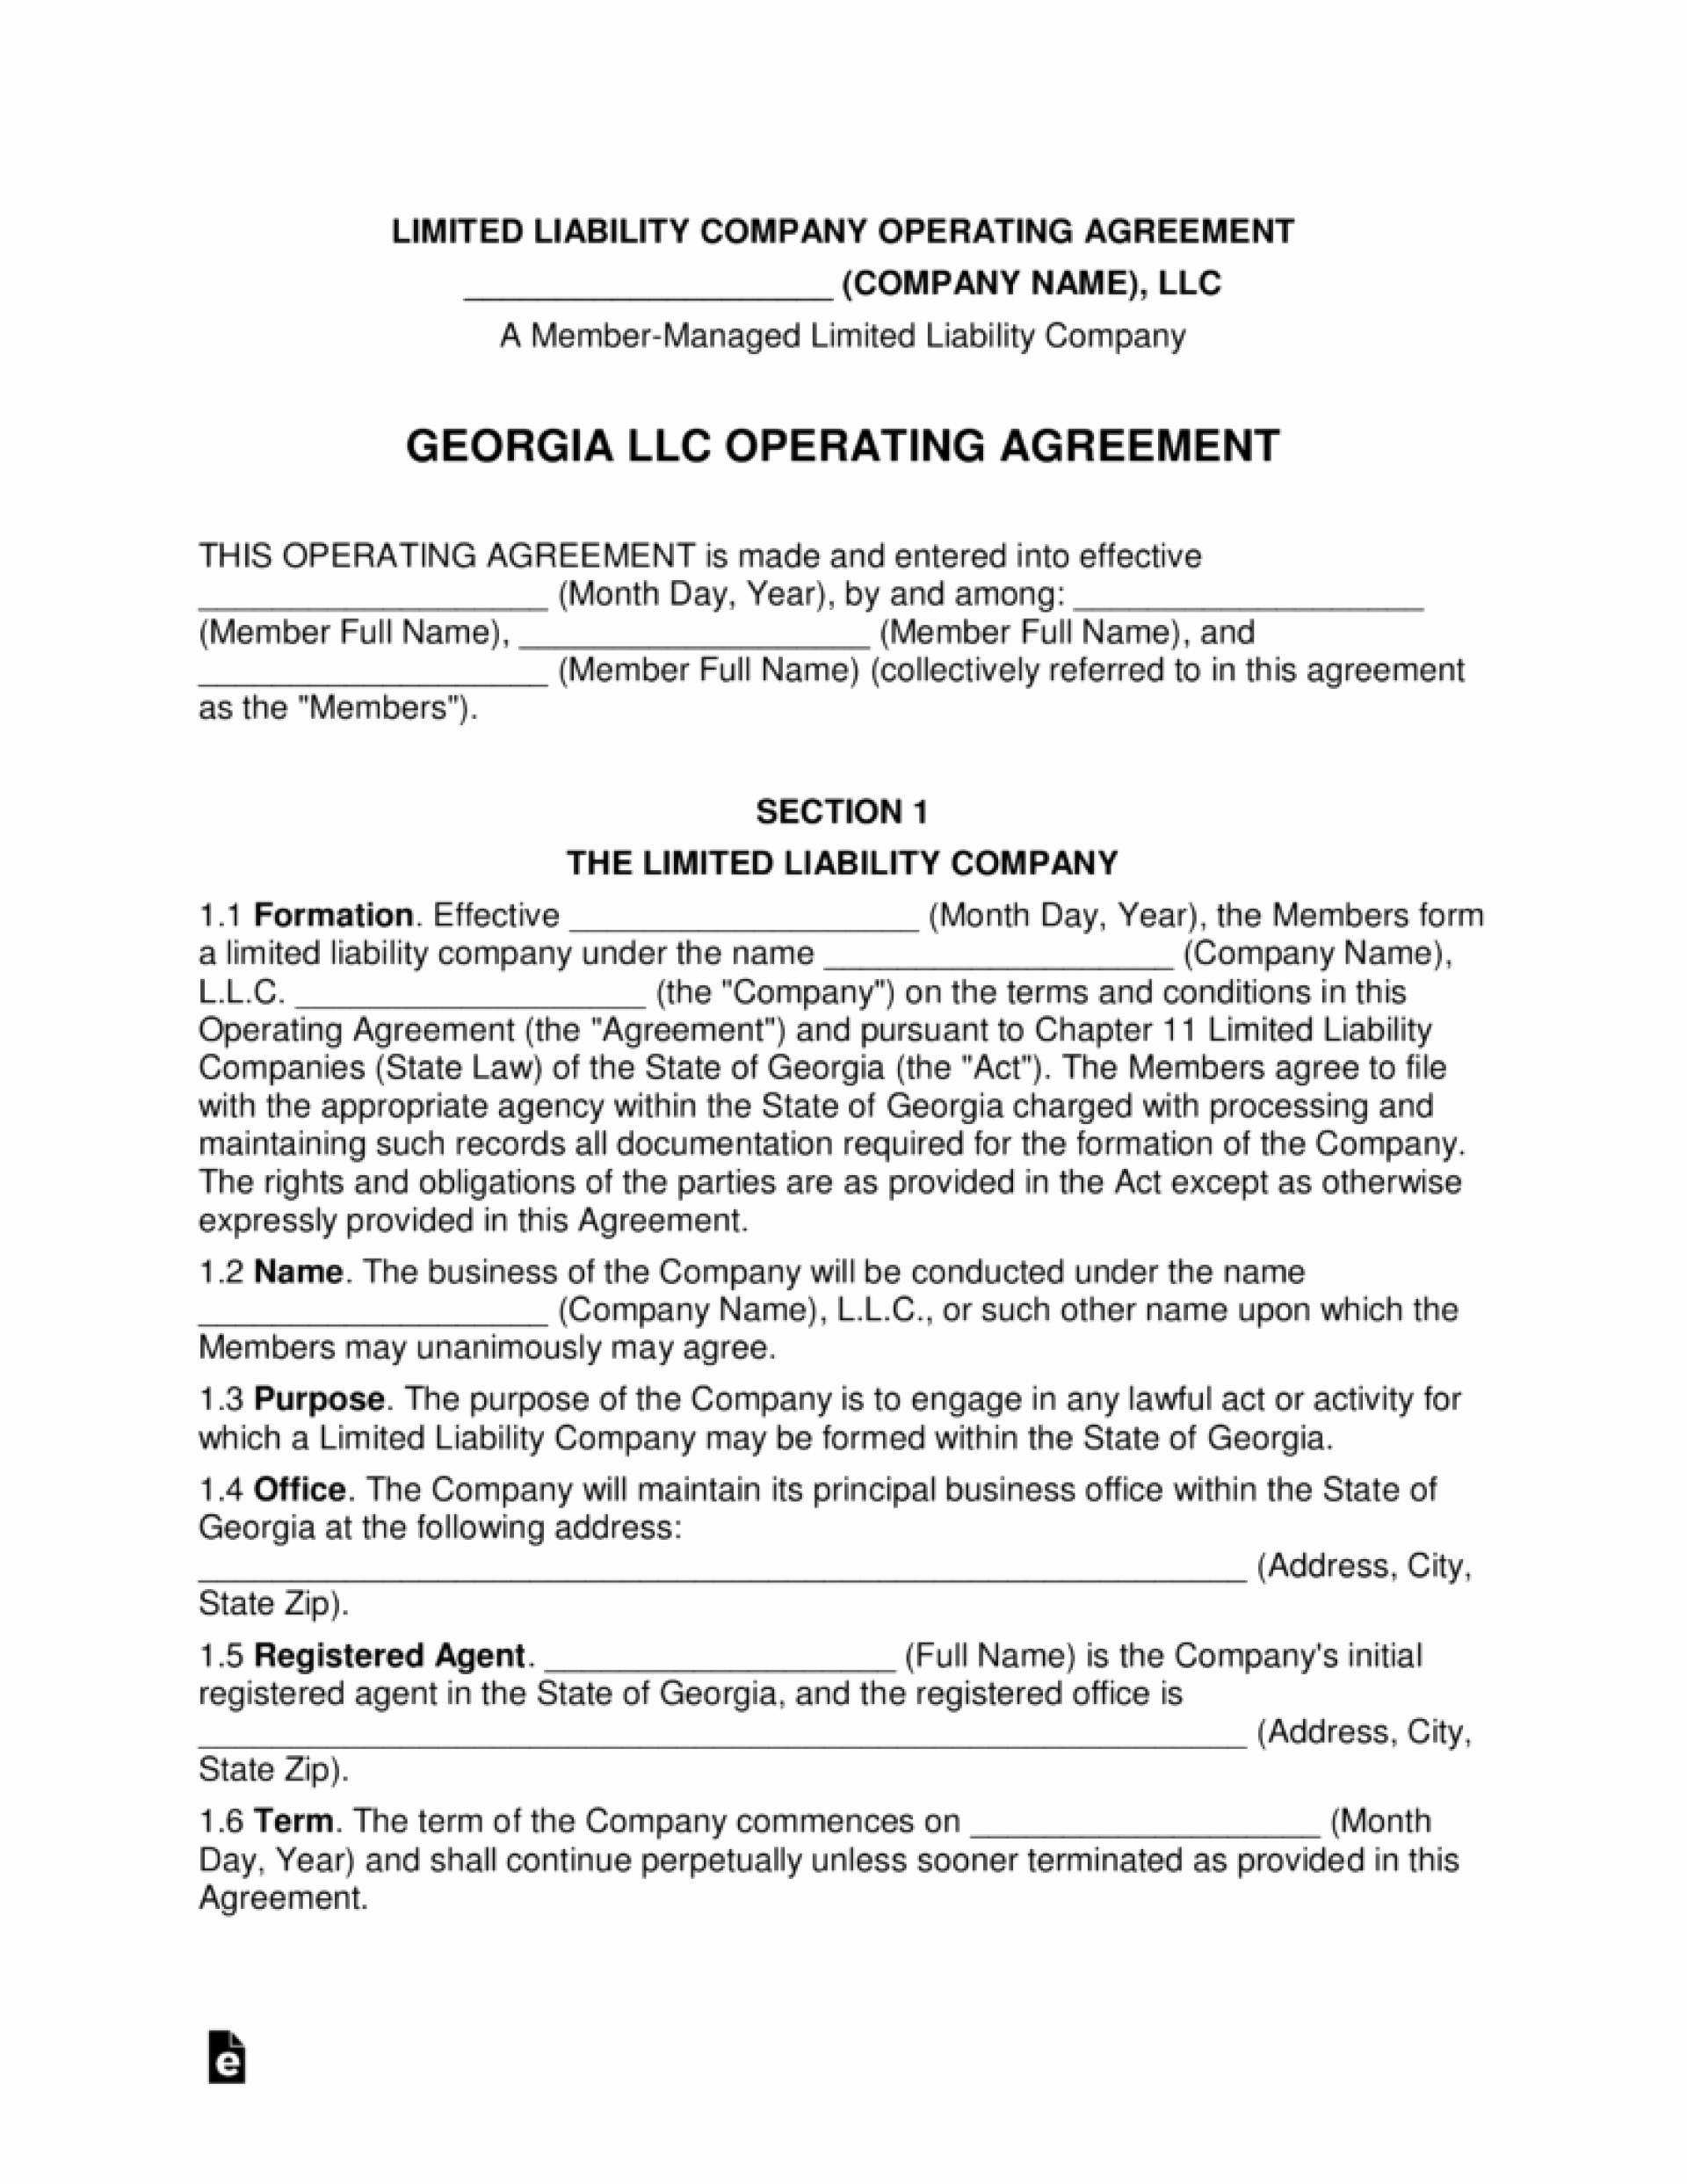 Single Member Llc Operating Agreement Template Georgia